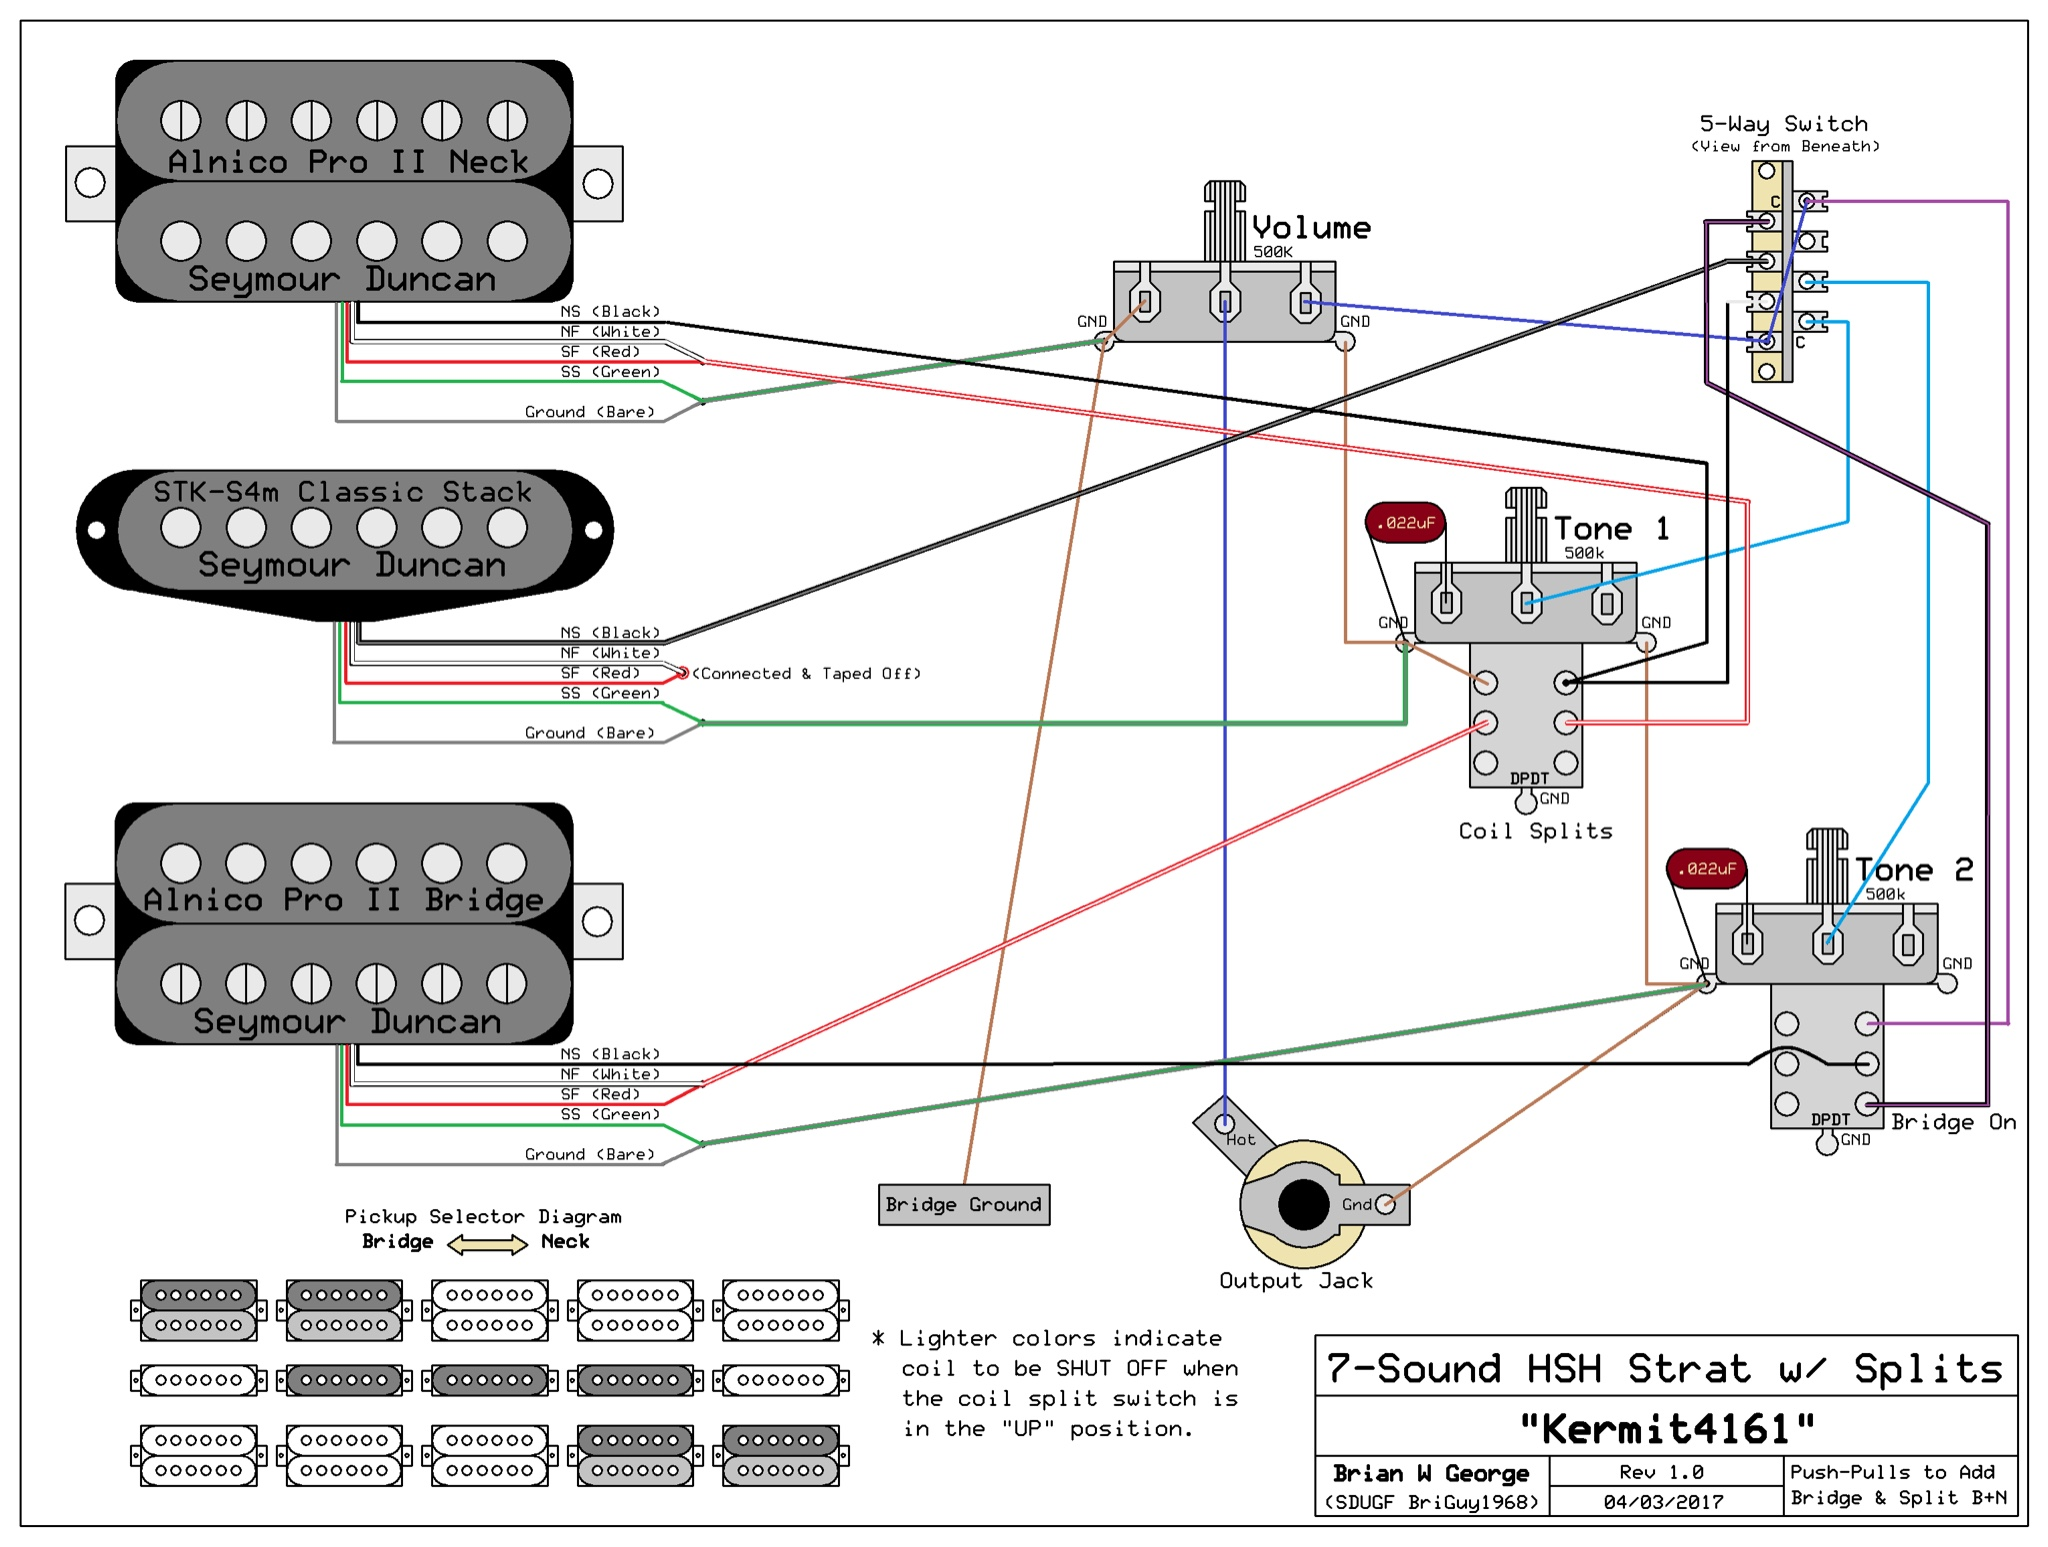 Hsh Wiring Diagram 2 Volume 1 Tone